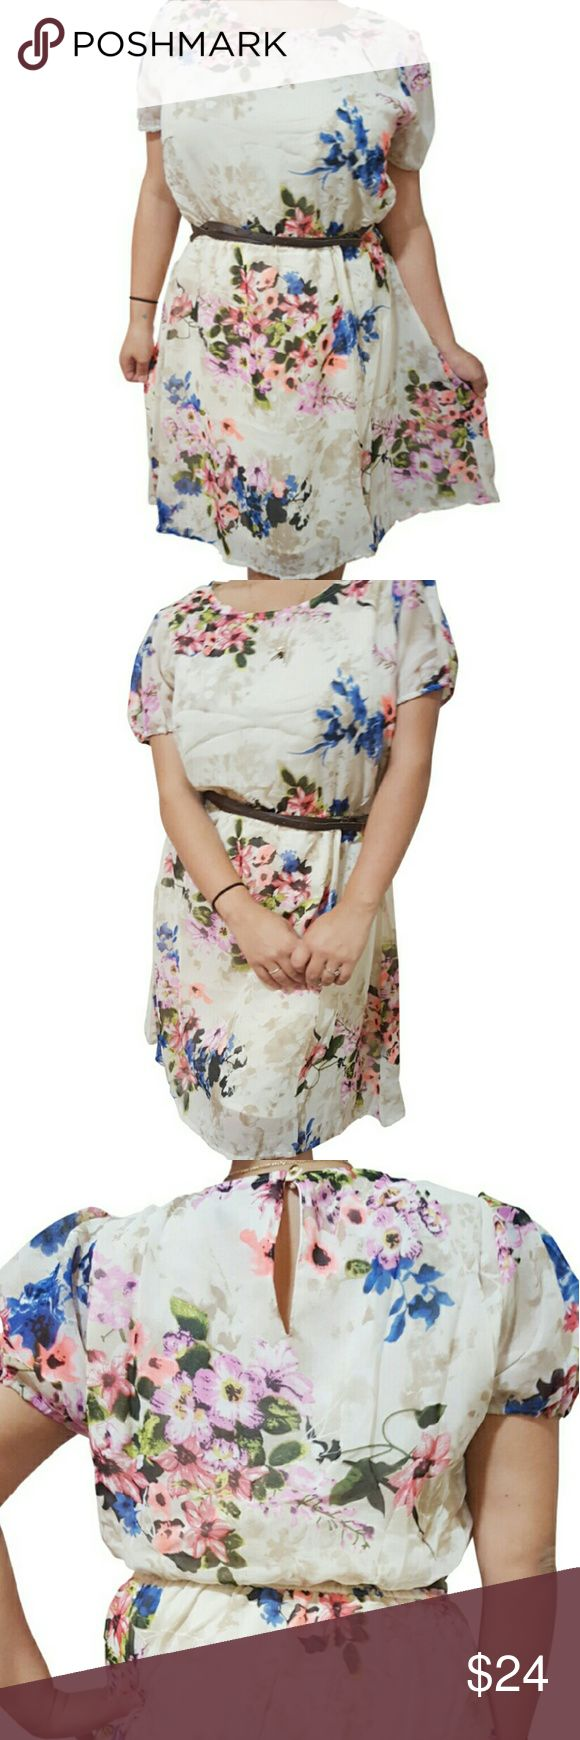 Plus Size Belted Floral Dress With Keyhole Back Plus Size Belted Floral Dress With Keyhole Back! Cream With Floral Pattern. Dresses Midi